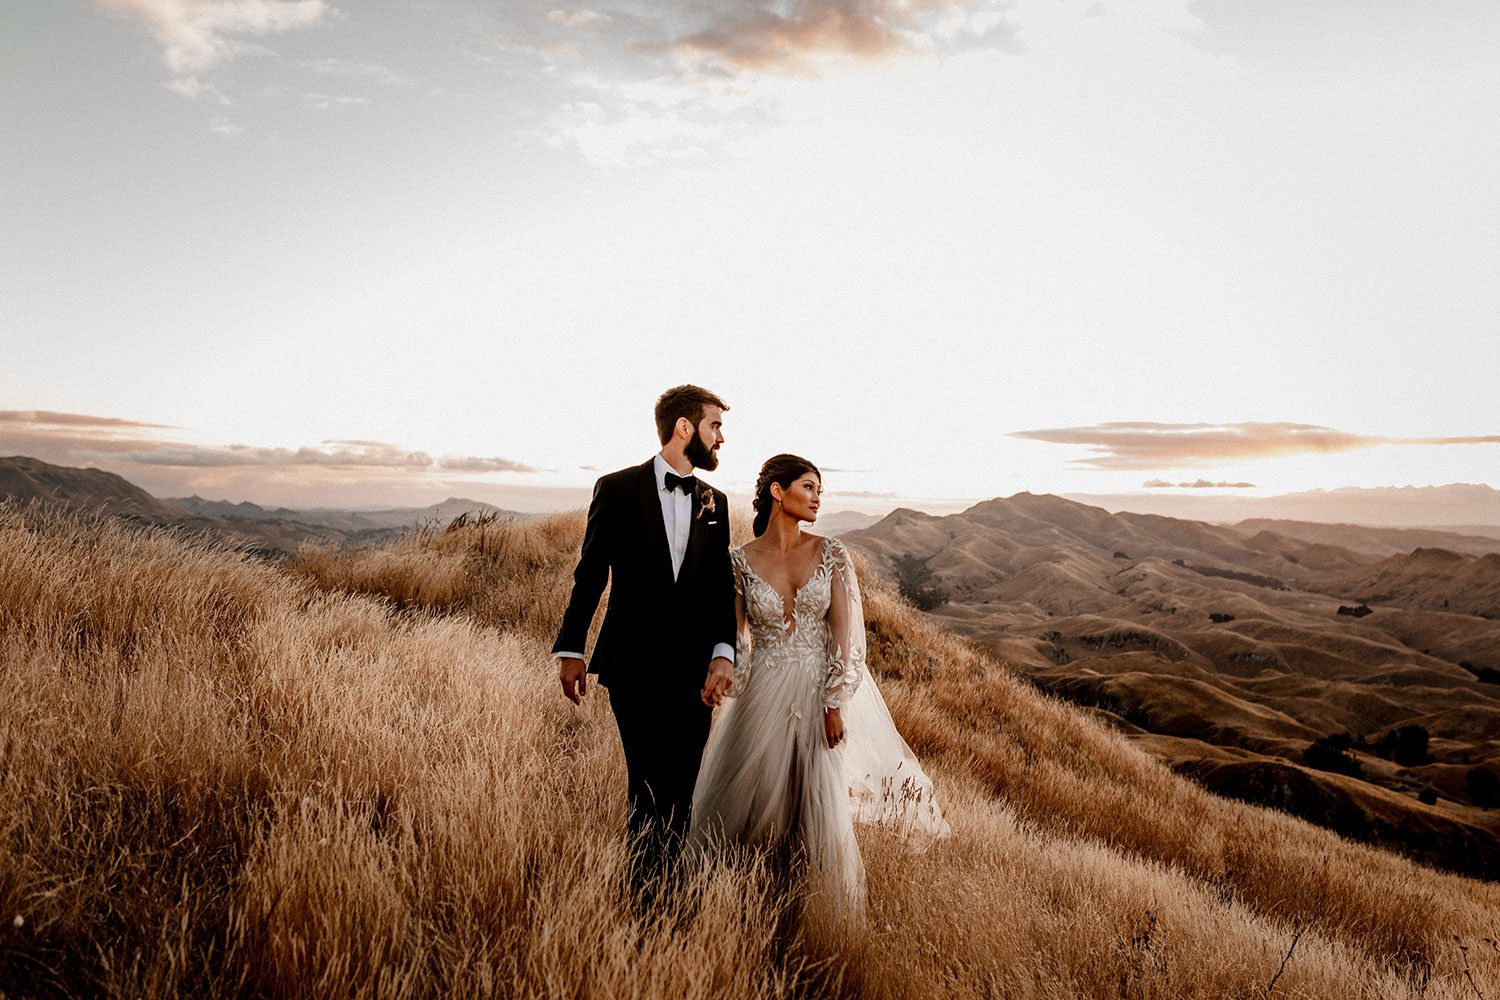 Bride wearing bespoke designer wedding dress by Vinka Bridal Boutique NZ, adorned with delicate applique lace and puffed sleeves - on hill looking away